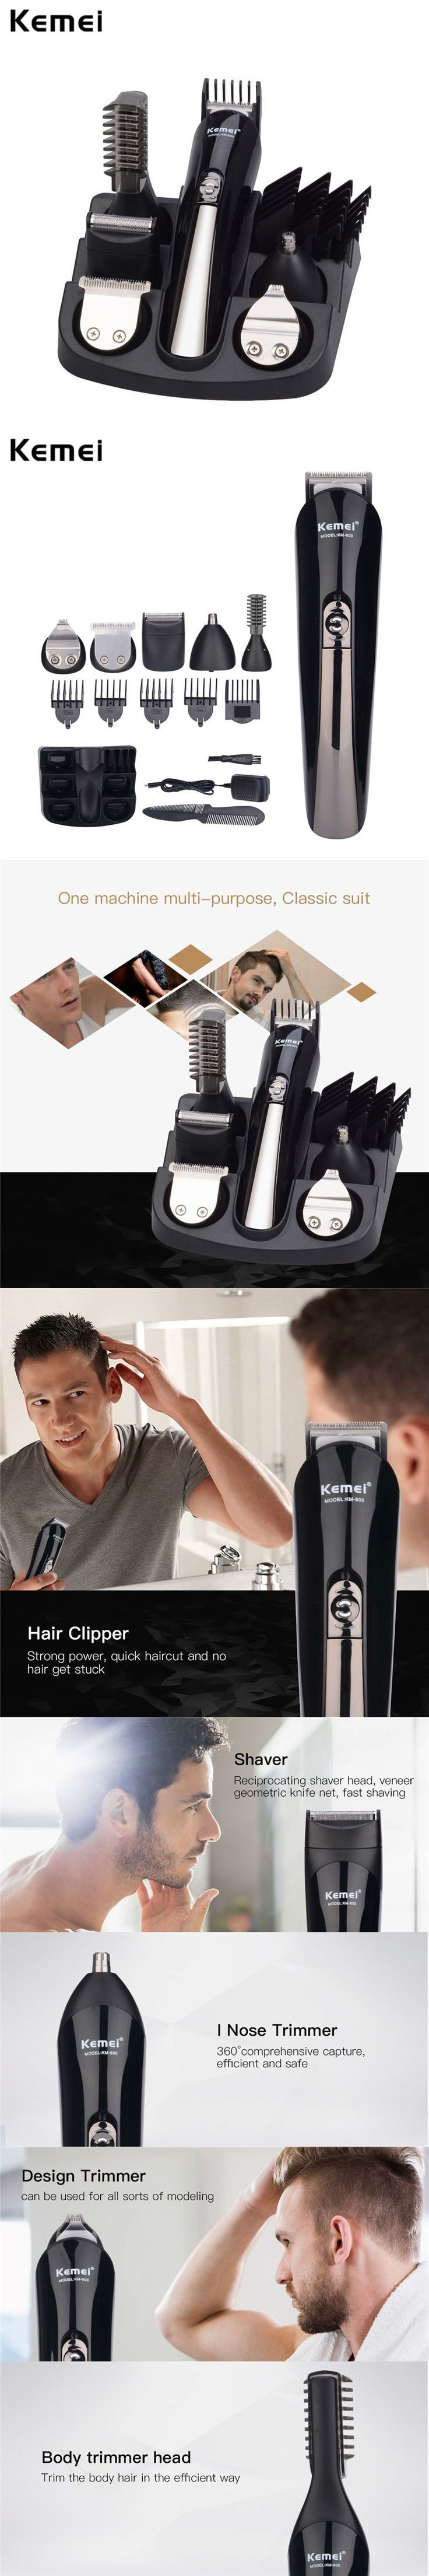 Kemei 6 In 1 Hair Trimmer Hair Clipper Electric Shaver Shaving Machine Beard Trimmer 100-240V Rechargeable Razor For Men Styling